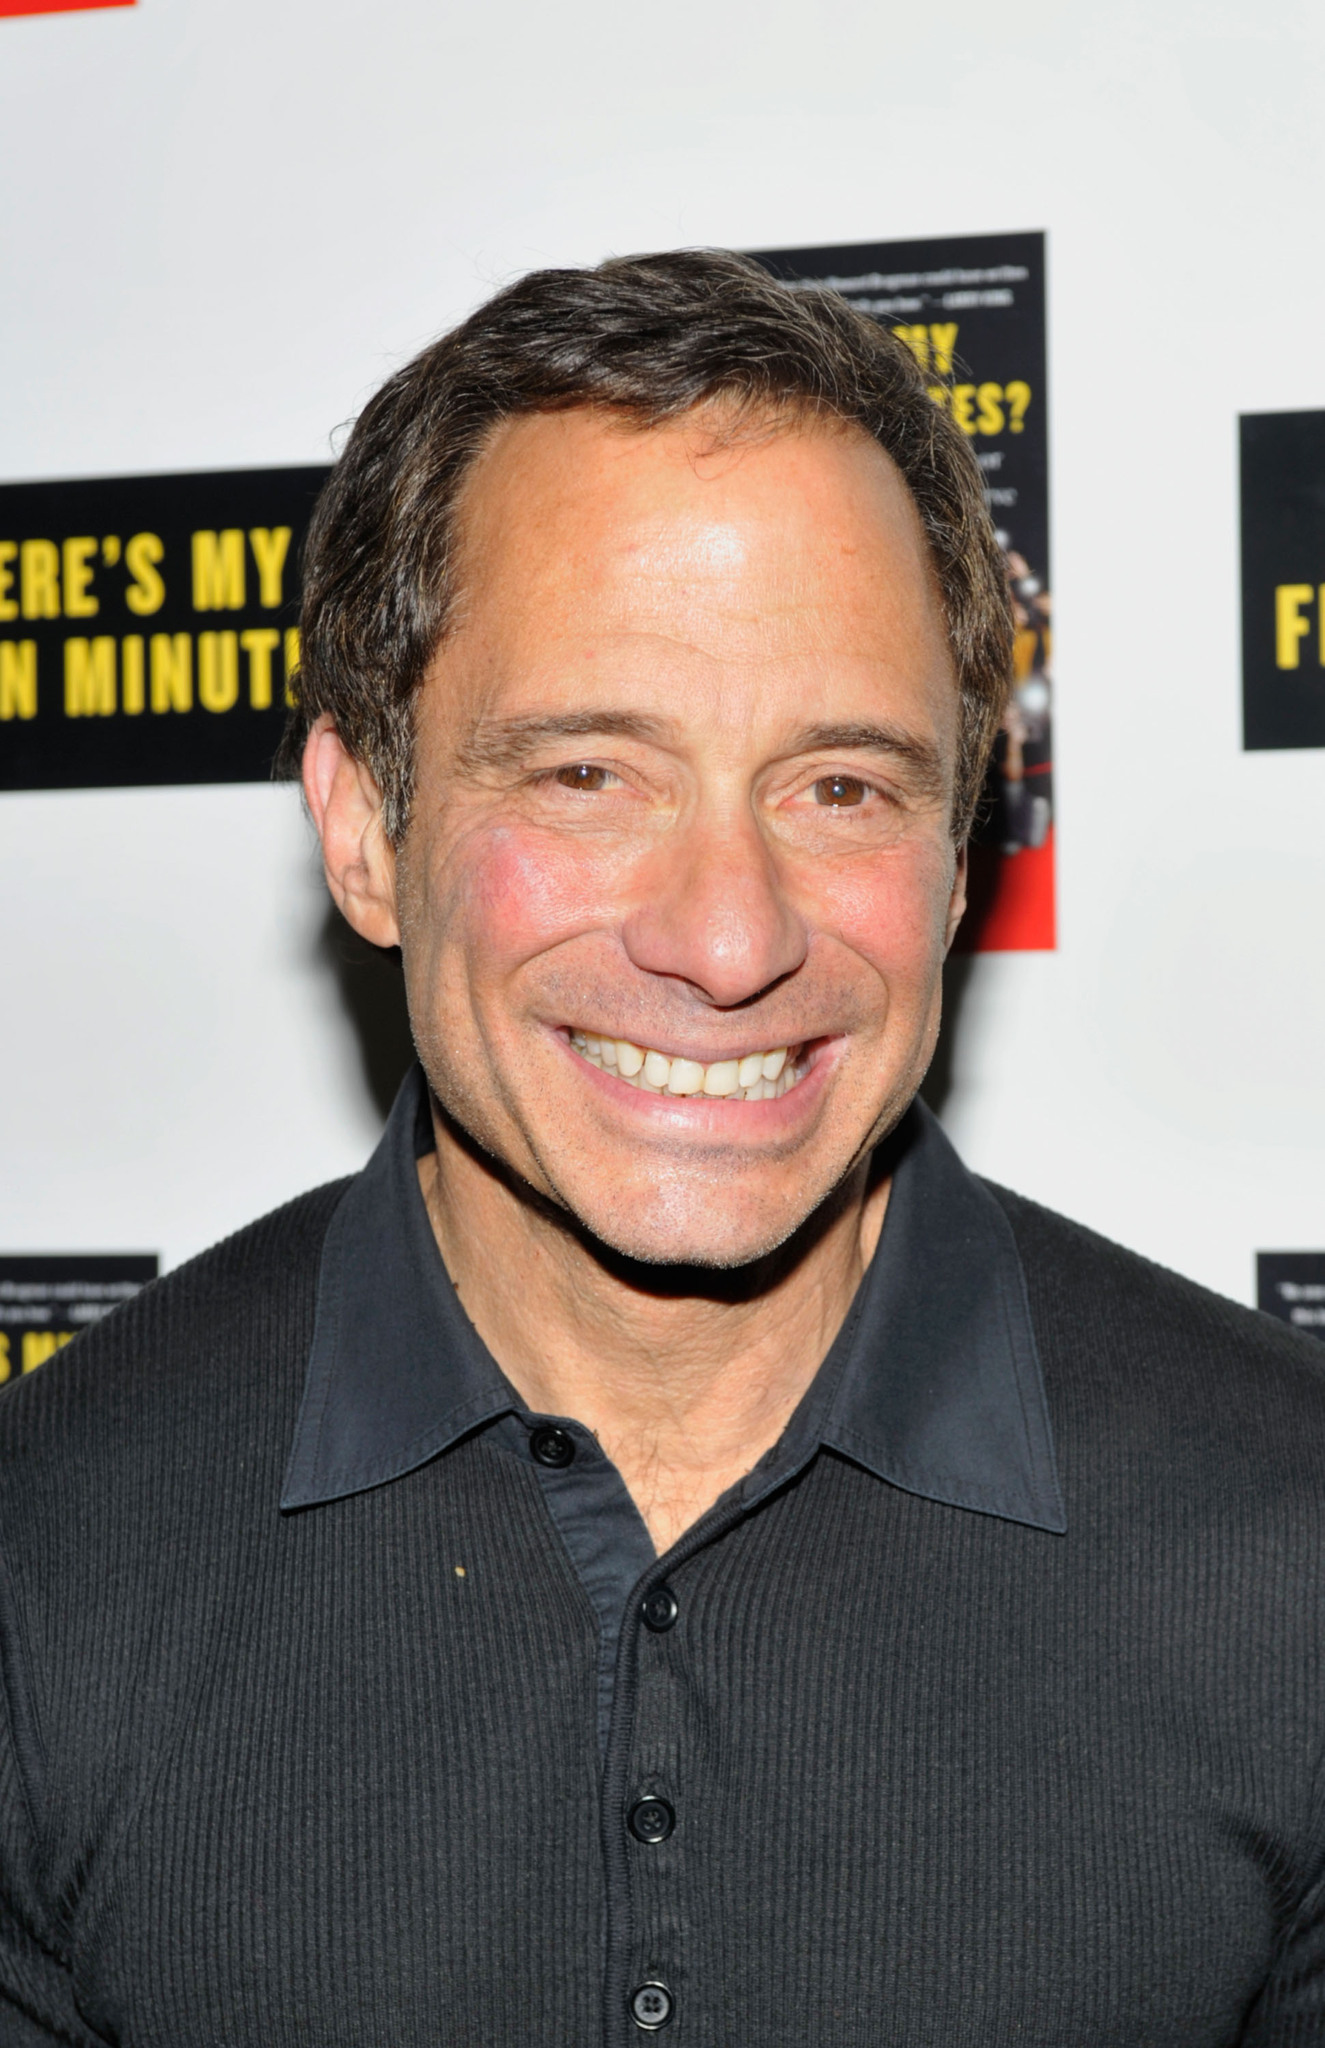 The 70-year old son of father (?) and mother(?) Harvey Levin in 2021 photo. Harvey Levin earned a  million dollar salary - leaving the net worth at  million in 2021